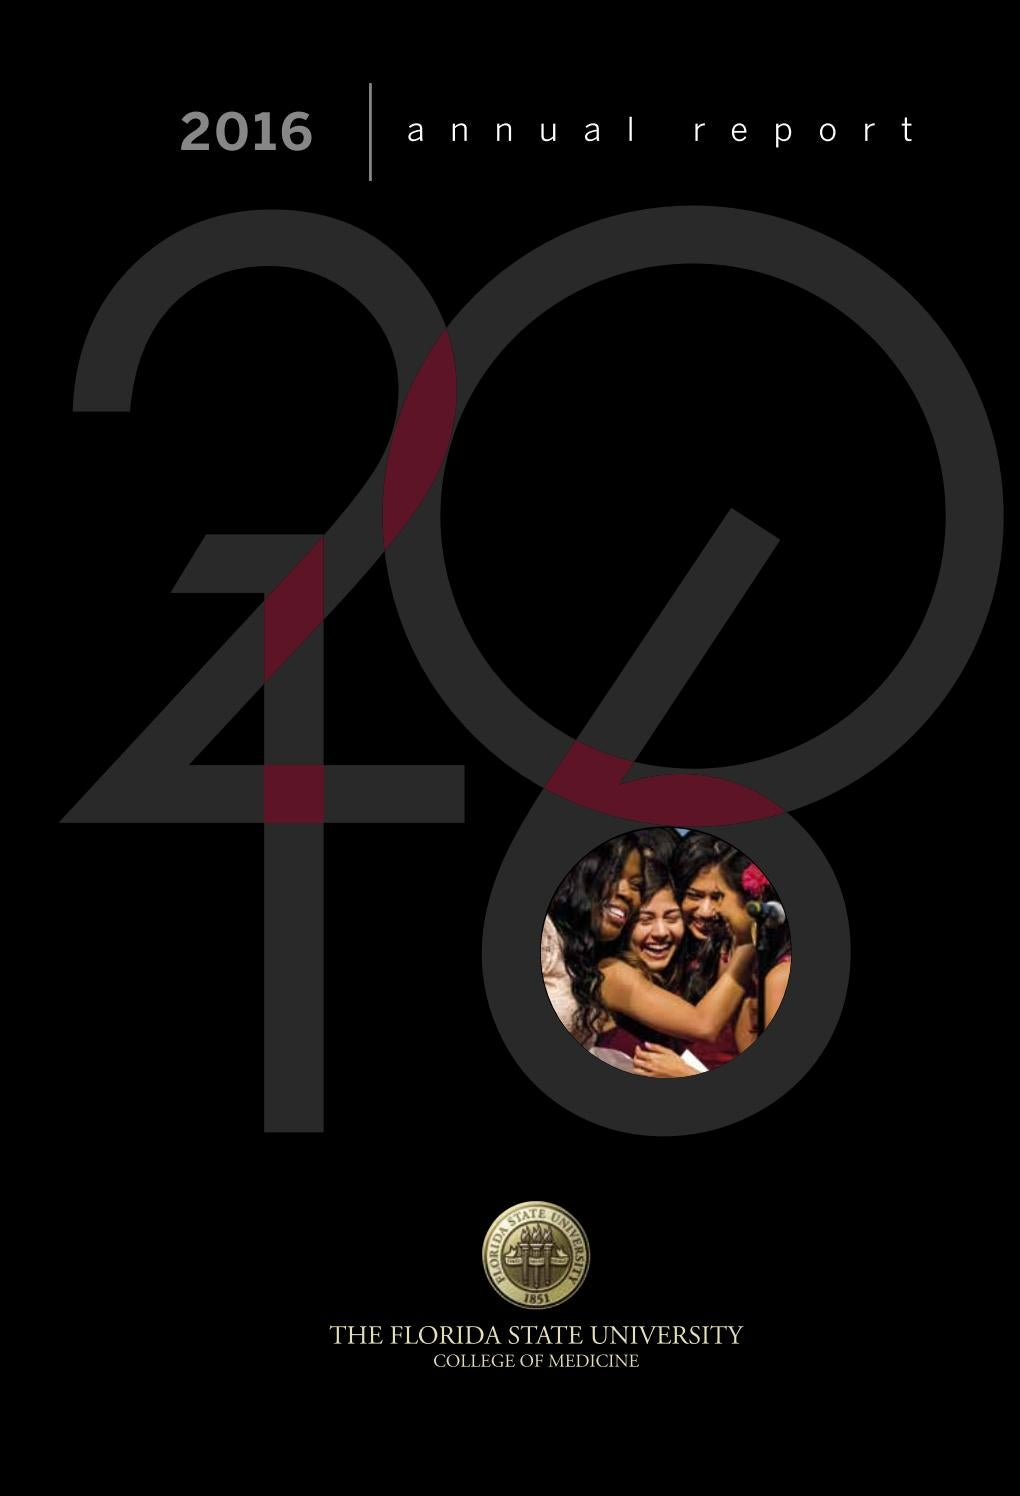 2016 annual report - Florida State University College of